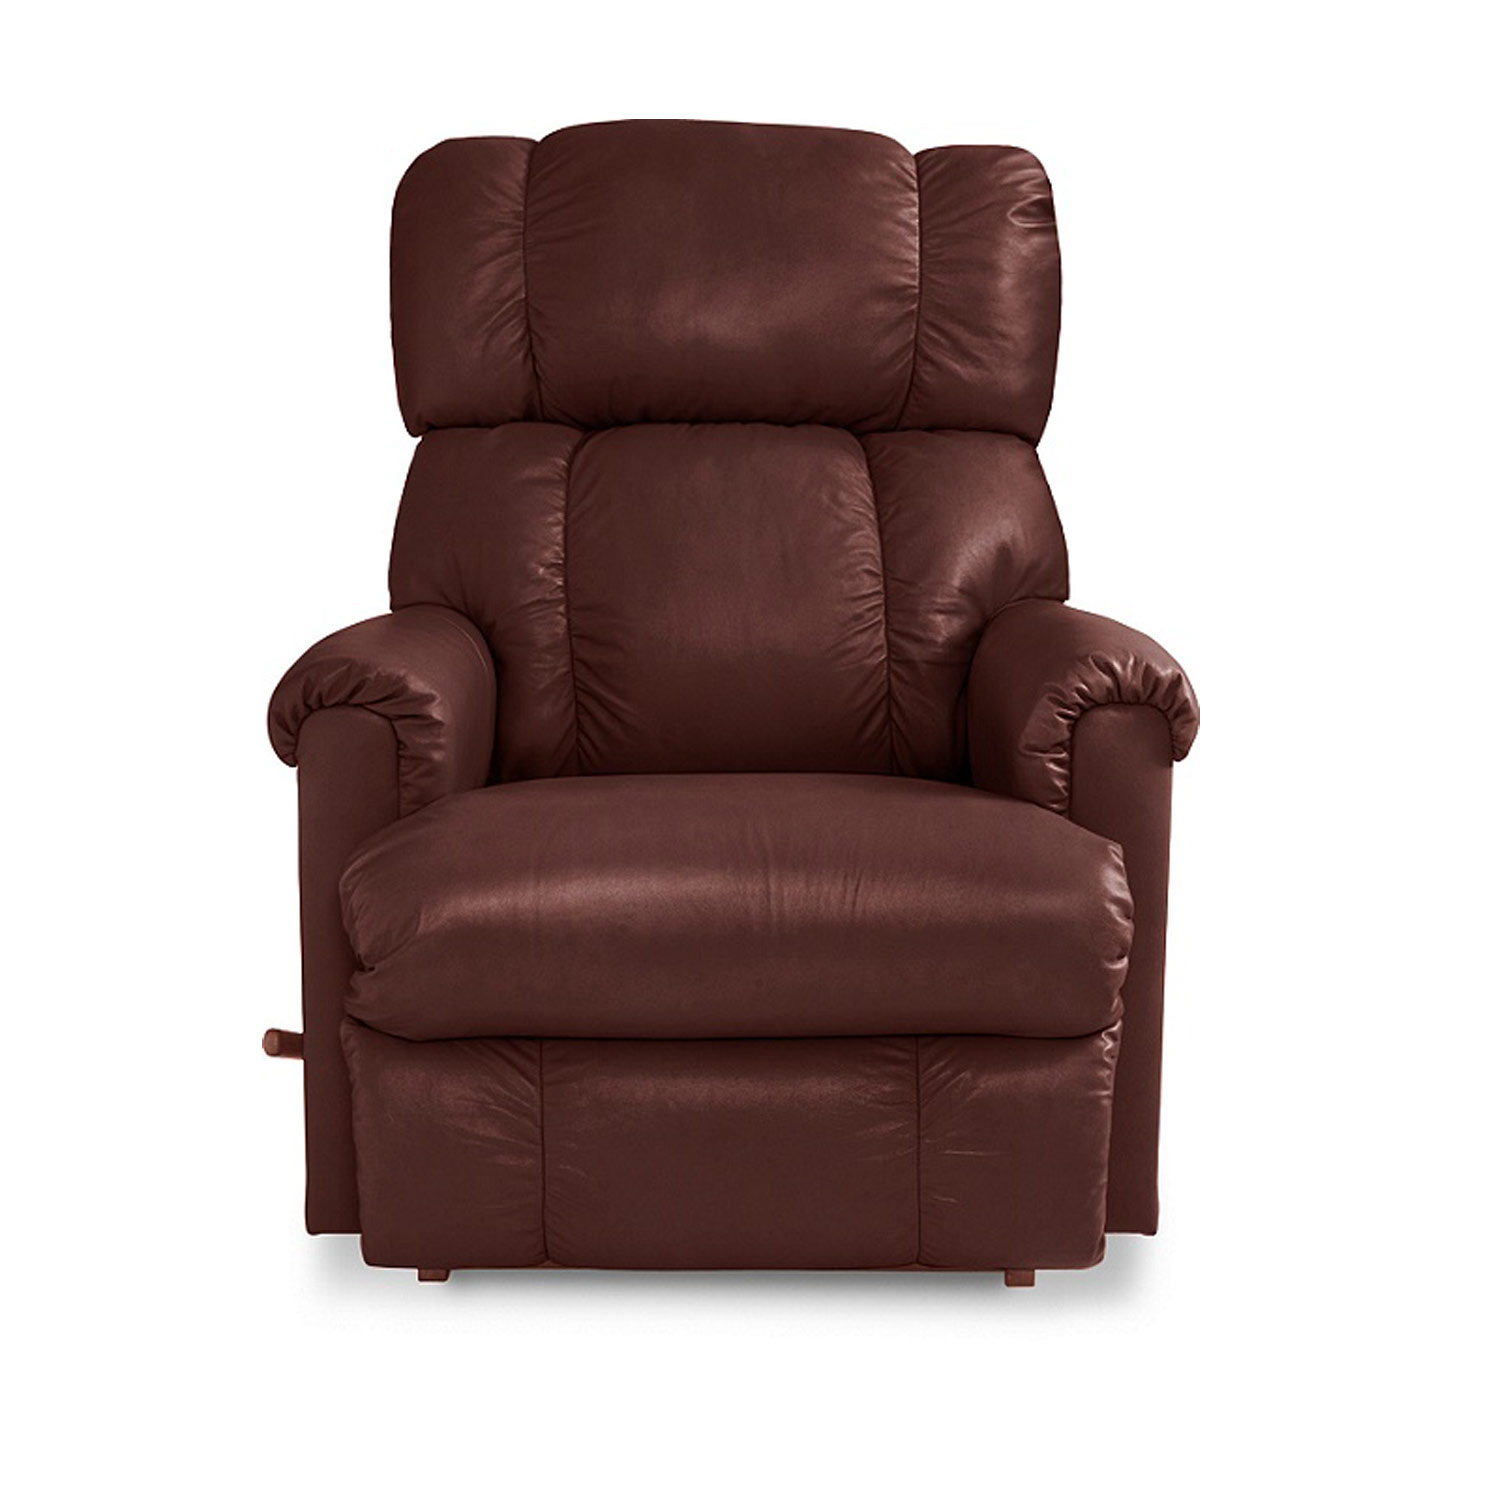 Z Chair For Sale Leather Recliner Lazy Boy La Z Boy Furniture Reese